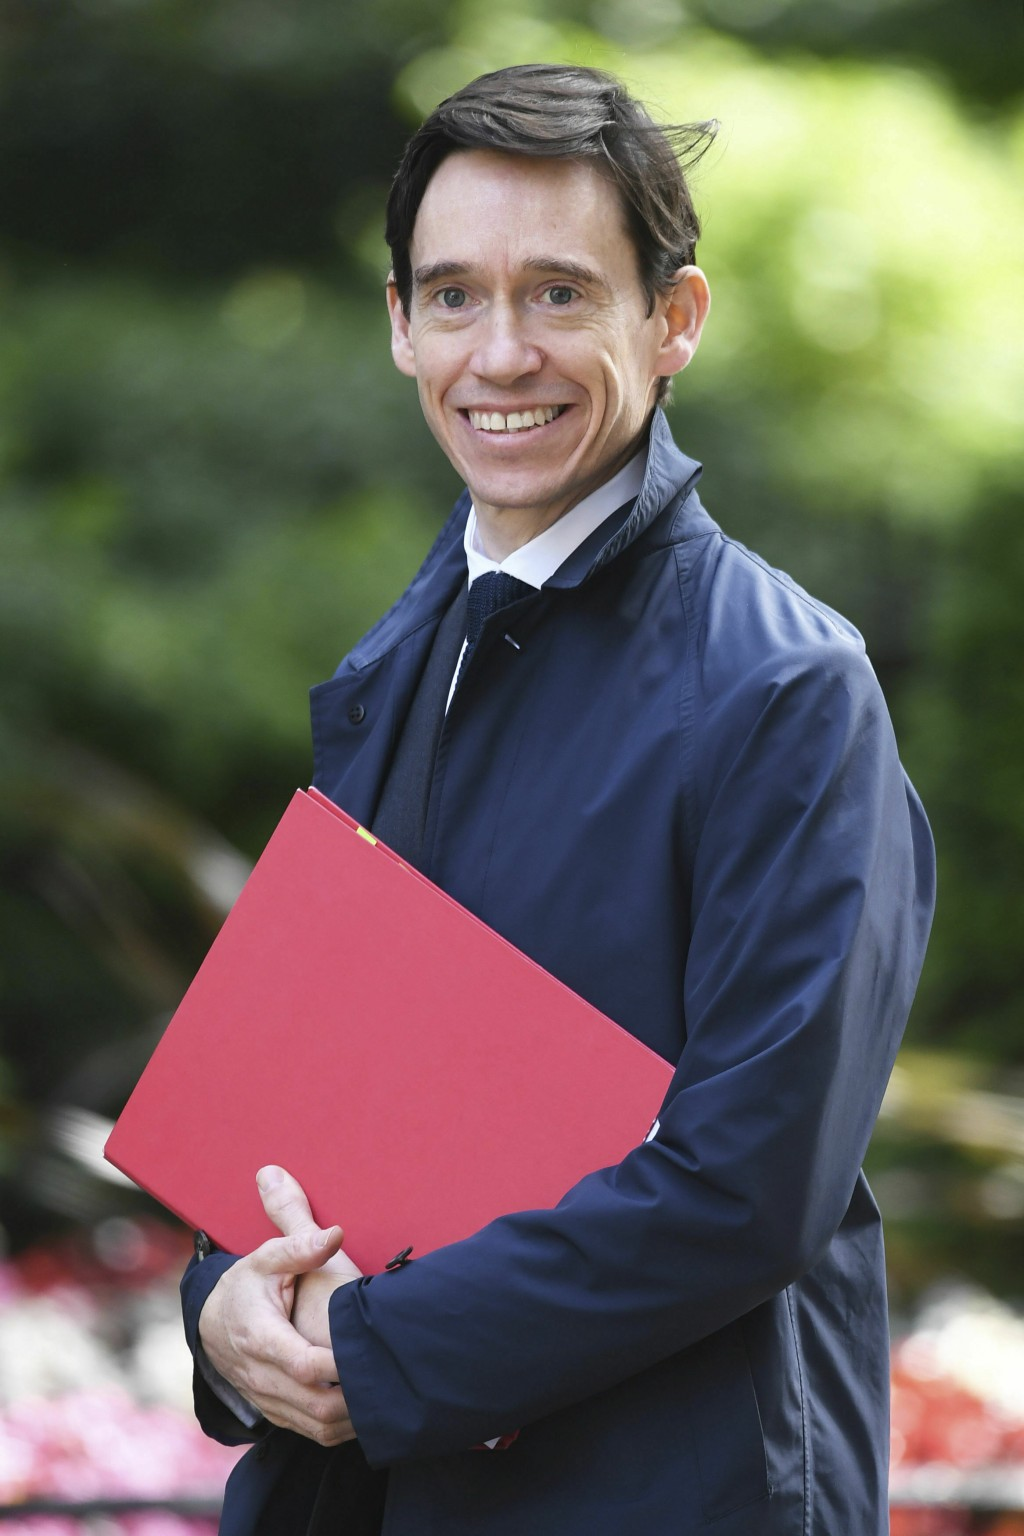 Britain's International Development Secretary Rory Stewart arrives for a cabinet meeting at 10 Downing Street, London, Tuesday June 18, 2019. (Stefan